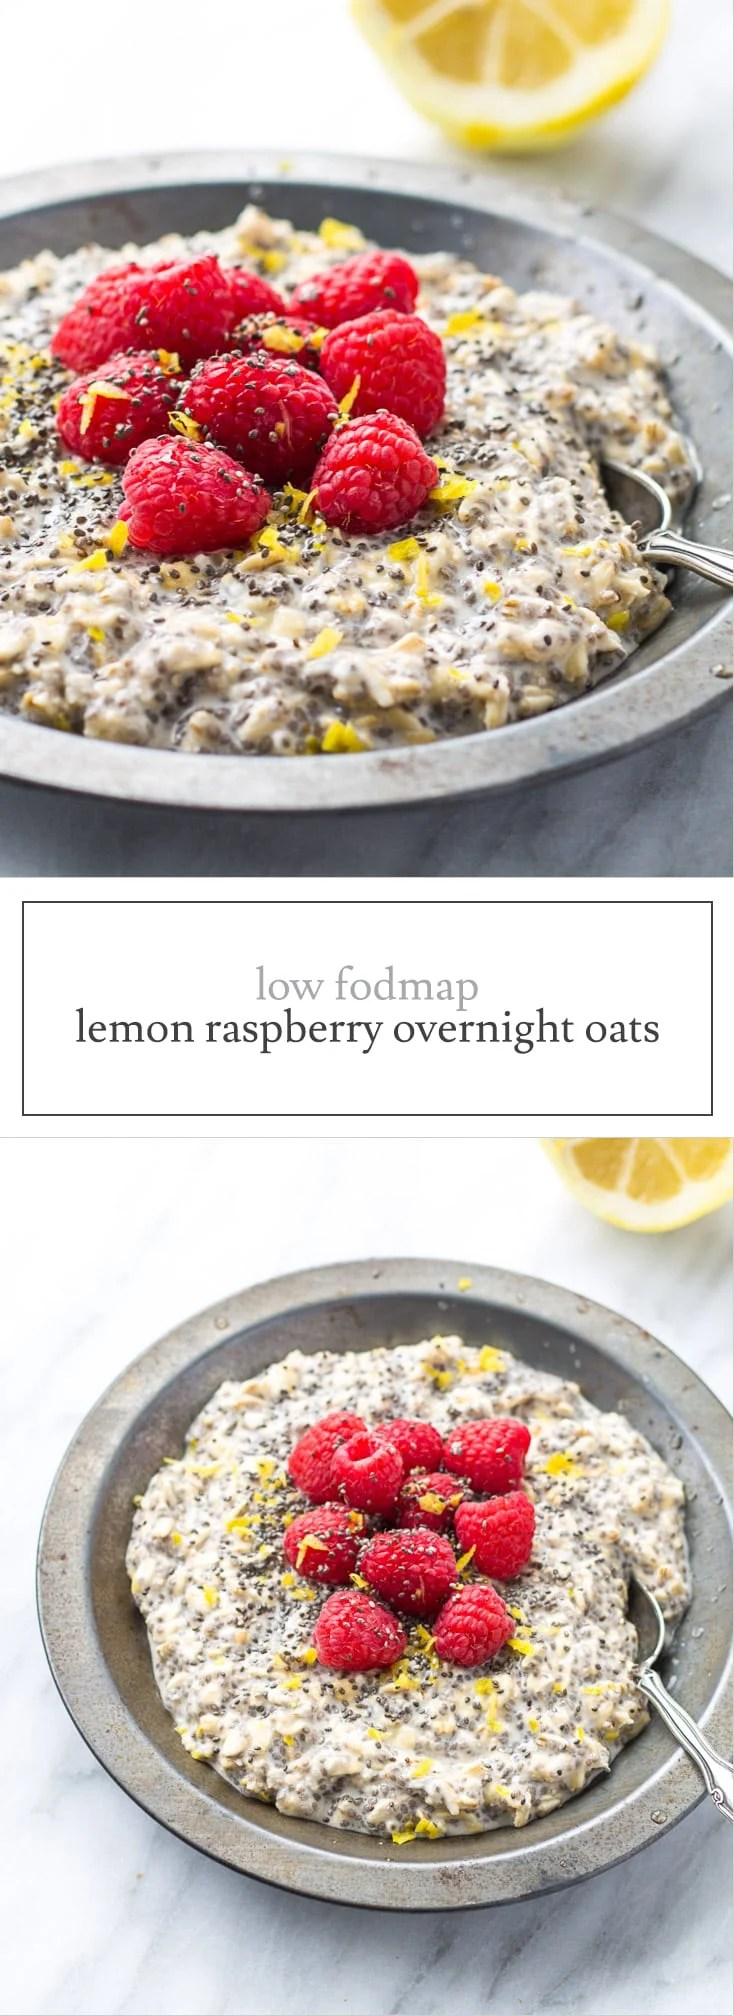 Spend five minutes at night whipping up this Low FODMAP Lemon Raspberry Overnight Oats recipe for a quick and easy breakfast that is light and refreshing!